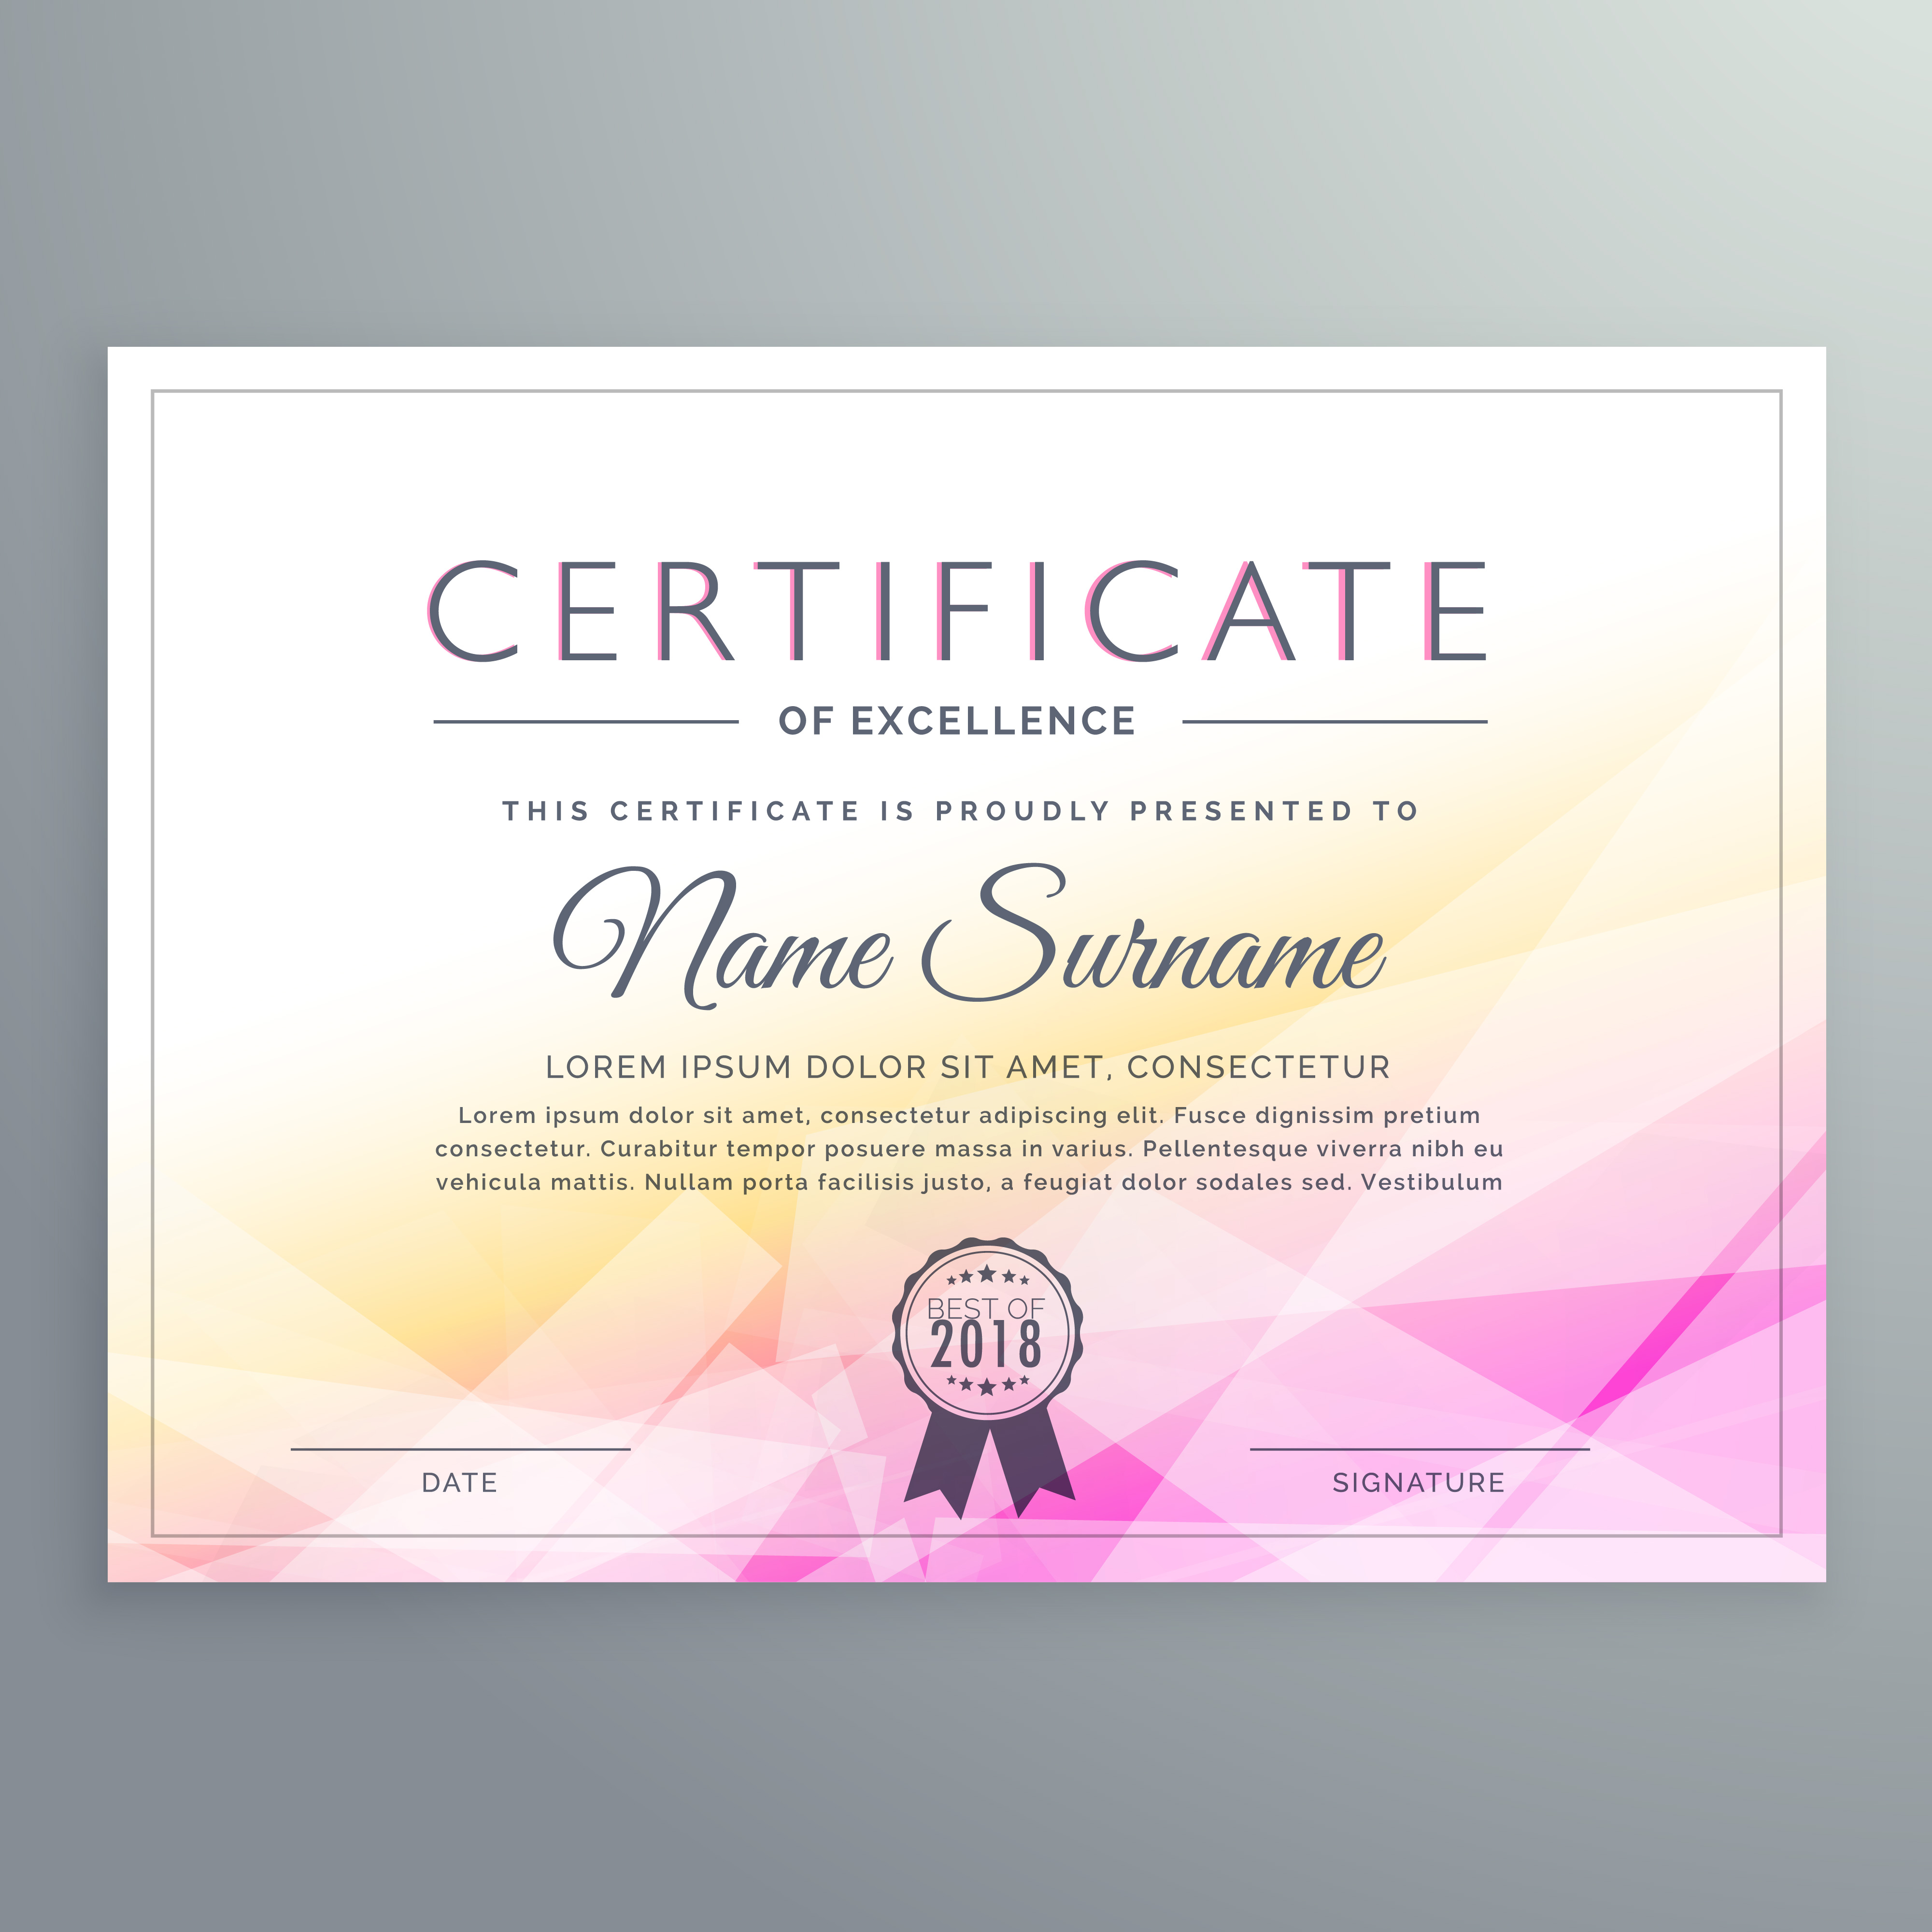 abstract diploma certificate design download free vector art stock graphics images